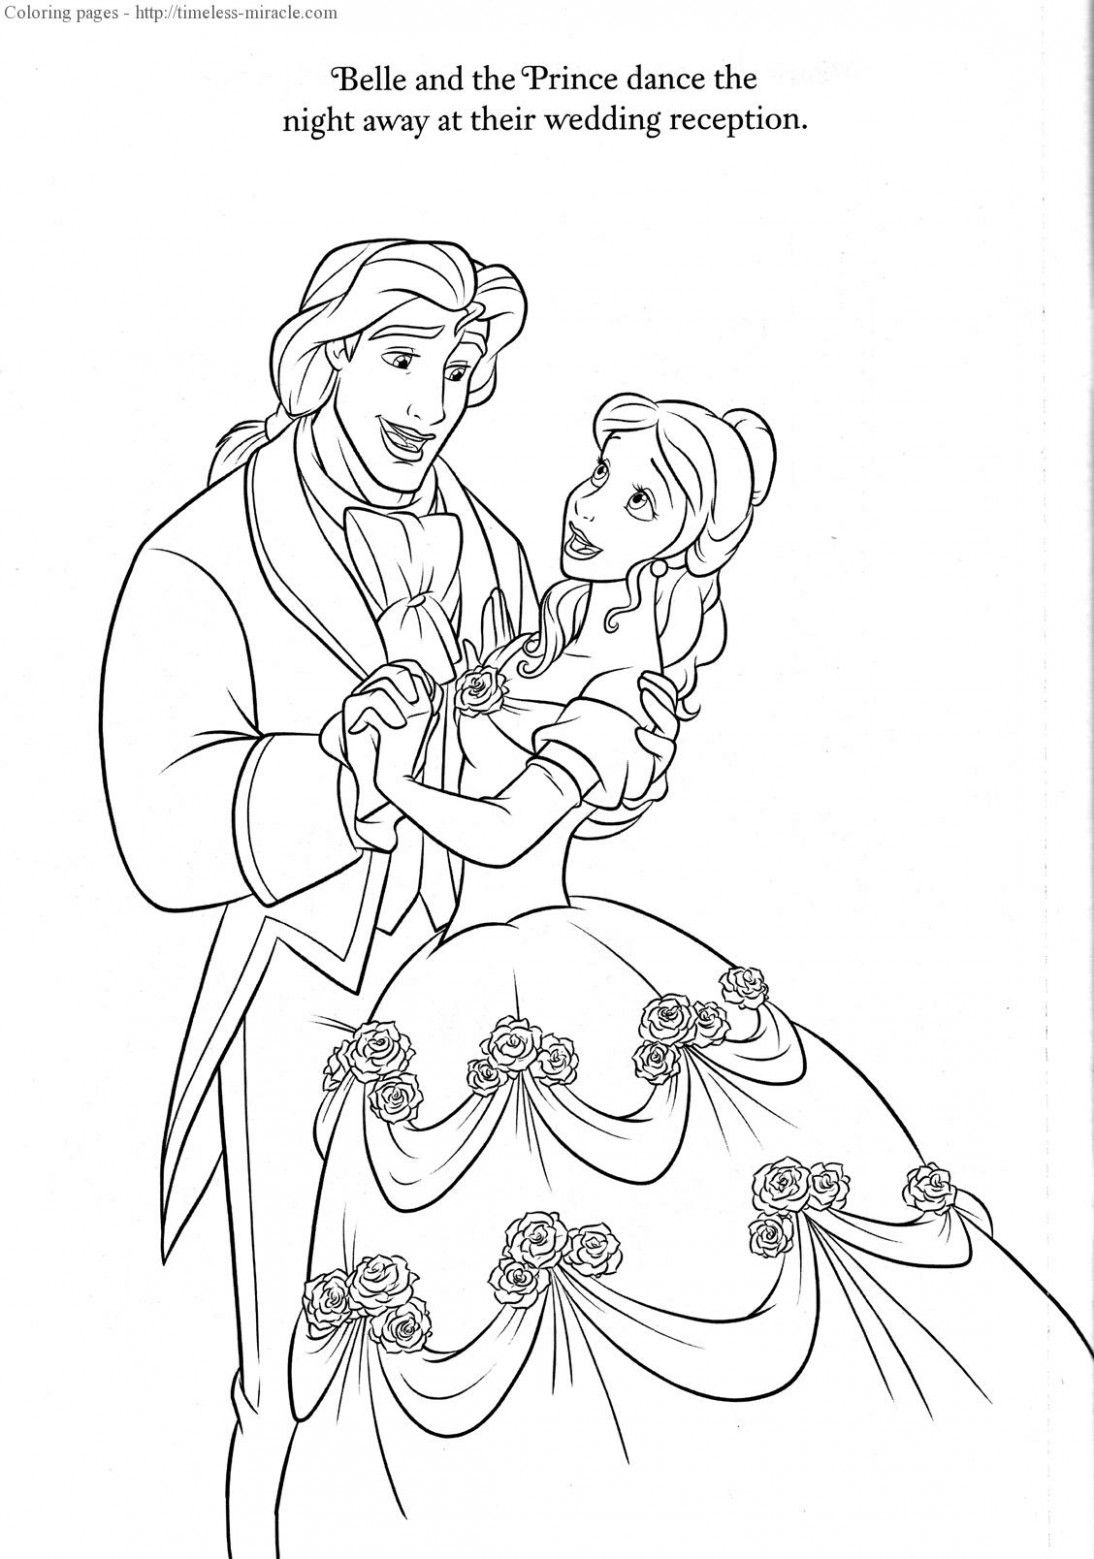 ariel and belle coloring pages ariel and belle coloring pages pages ariel and belle coloring